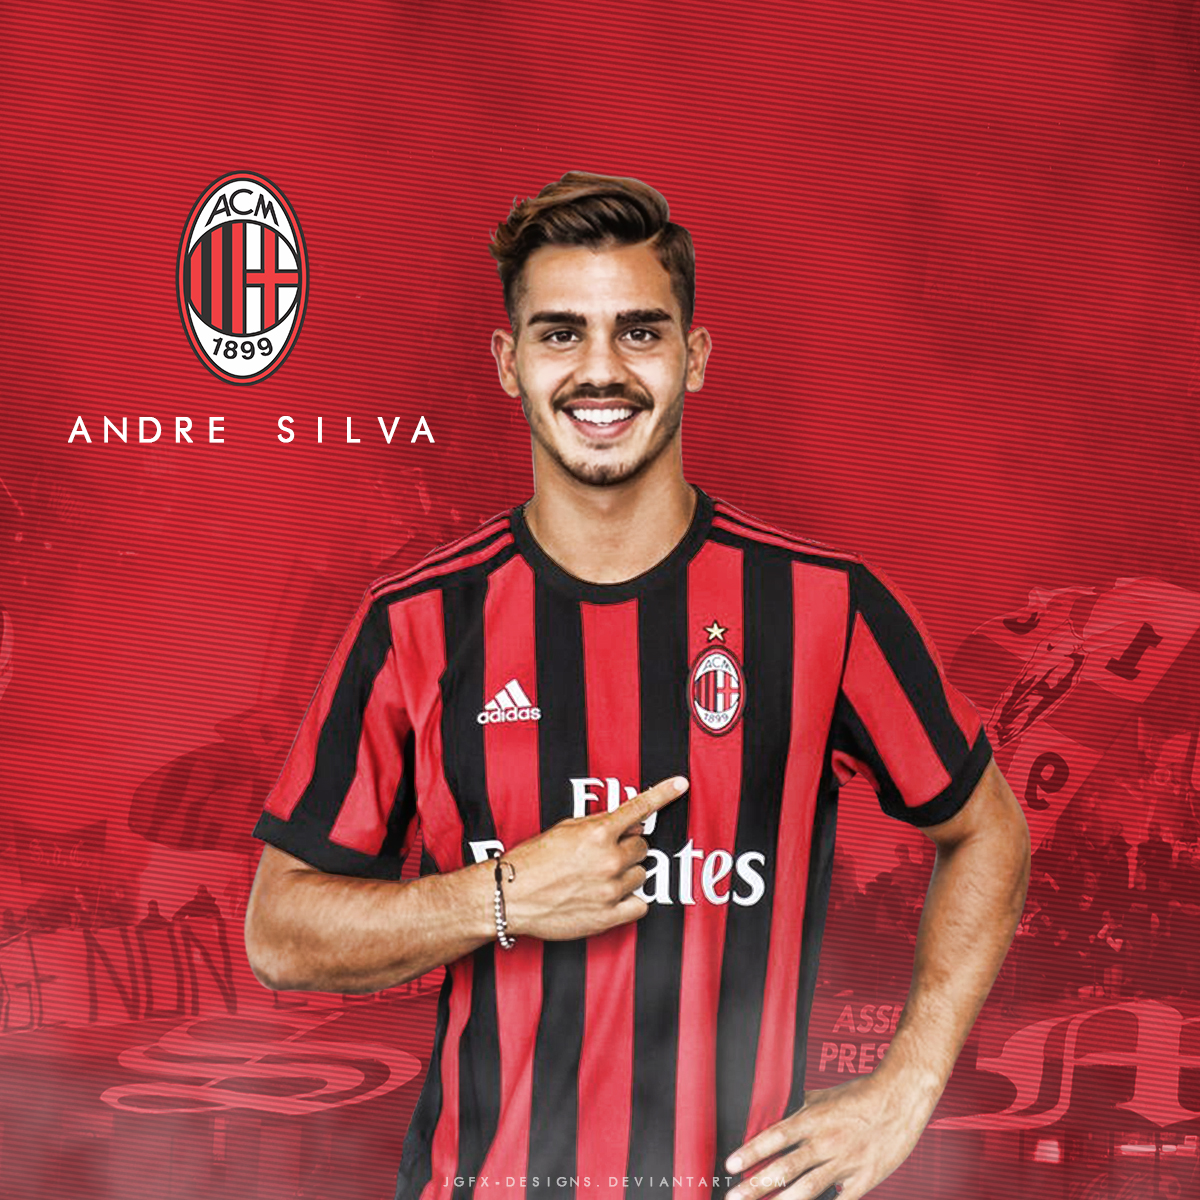 Andre Silva Wel e to AC Milan by jgfx designs on DeviantArt